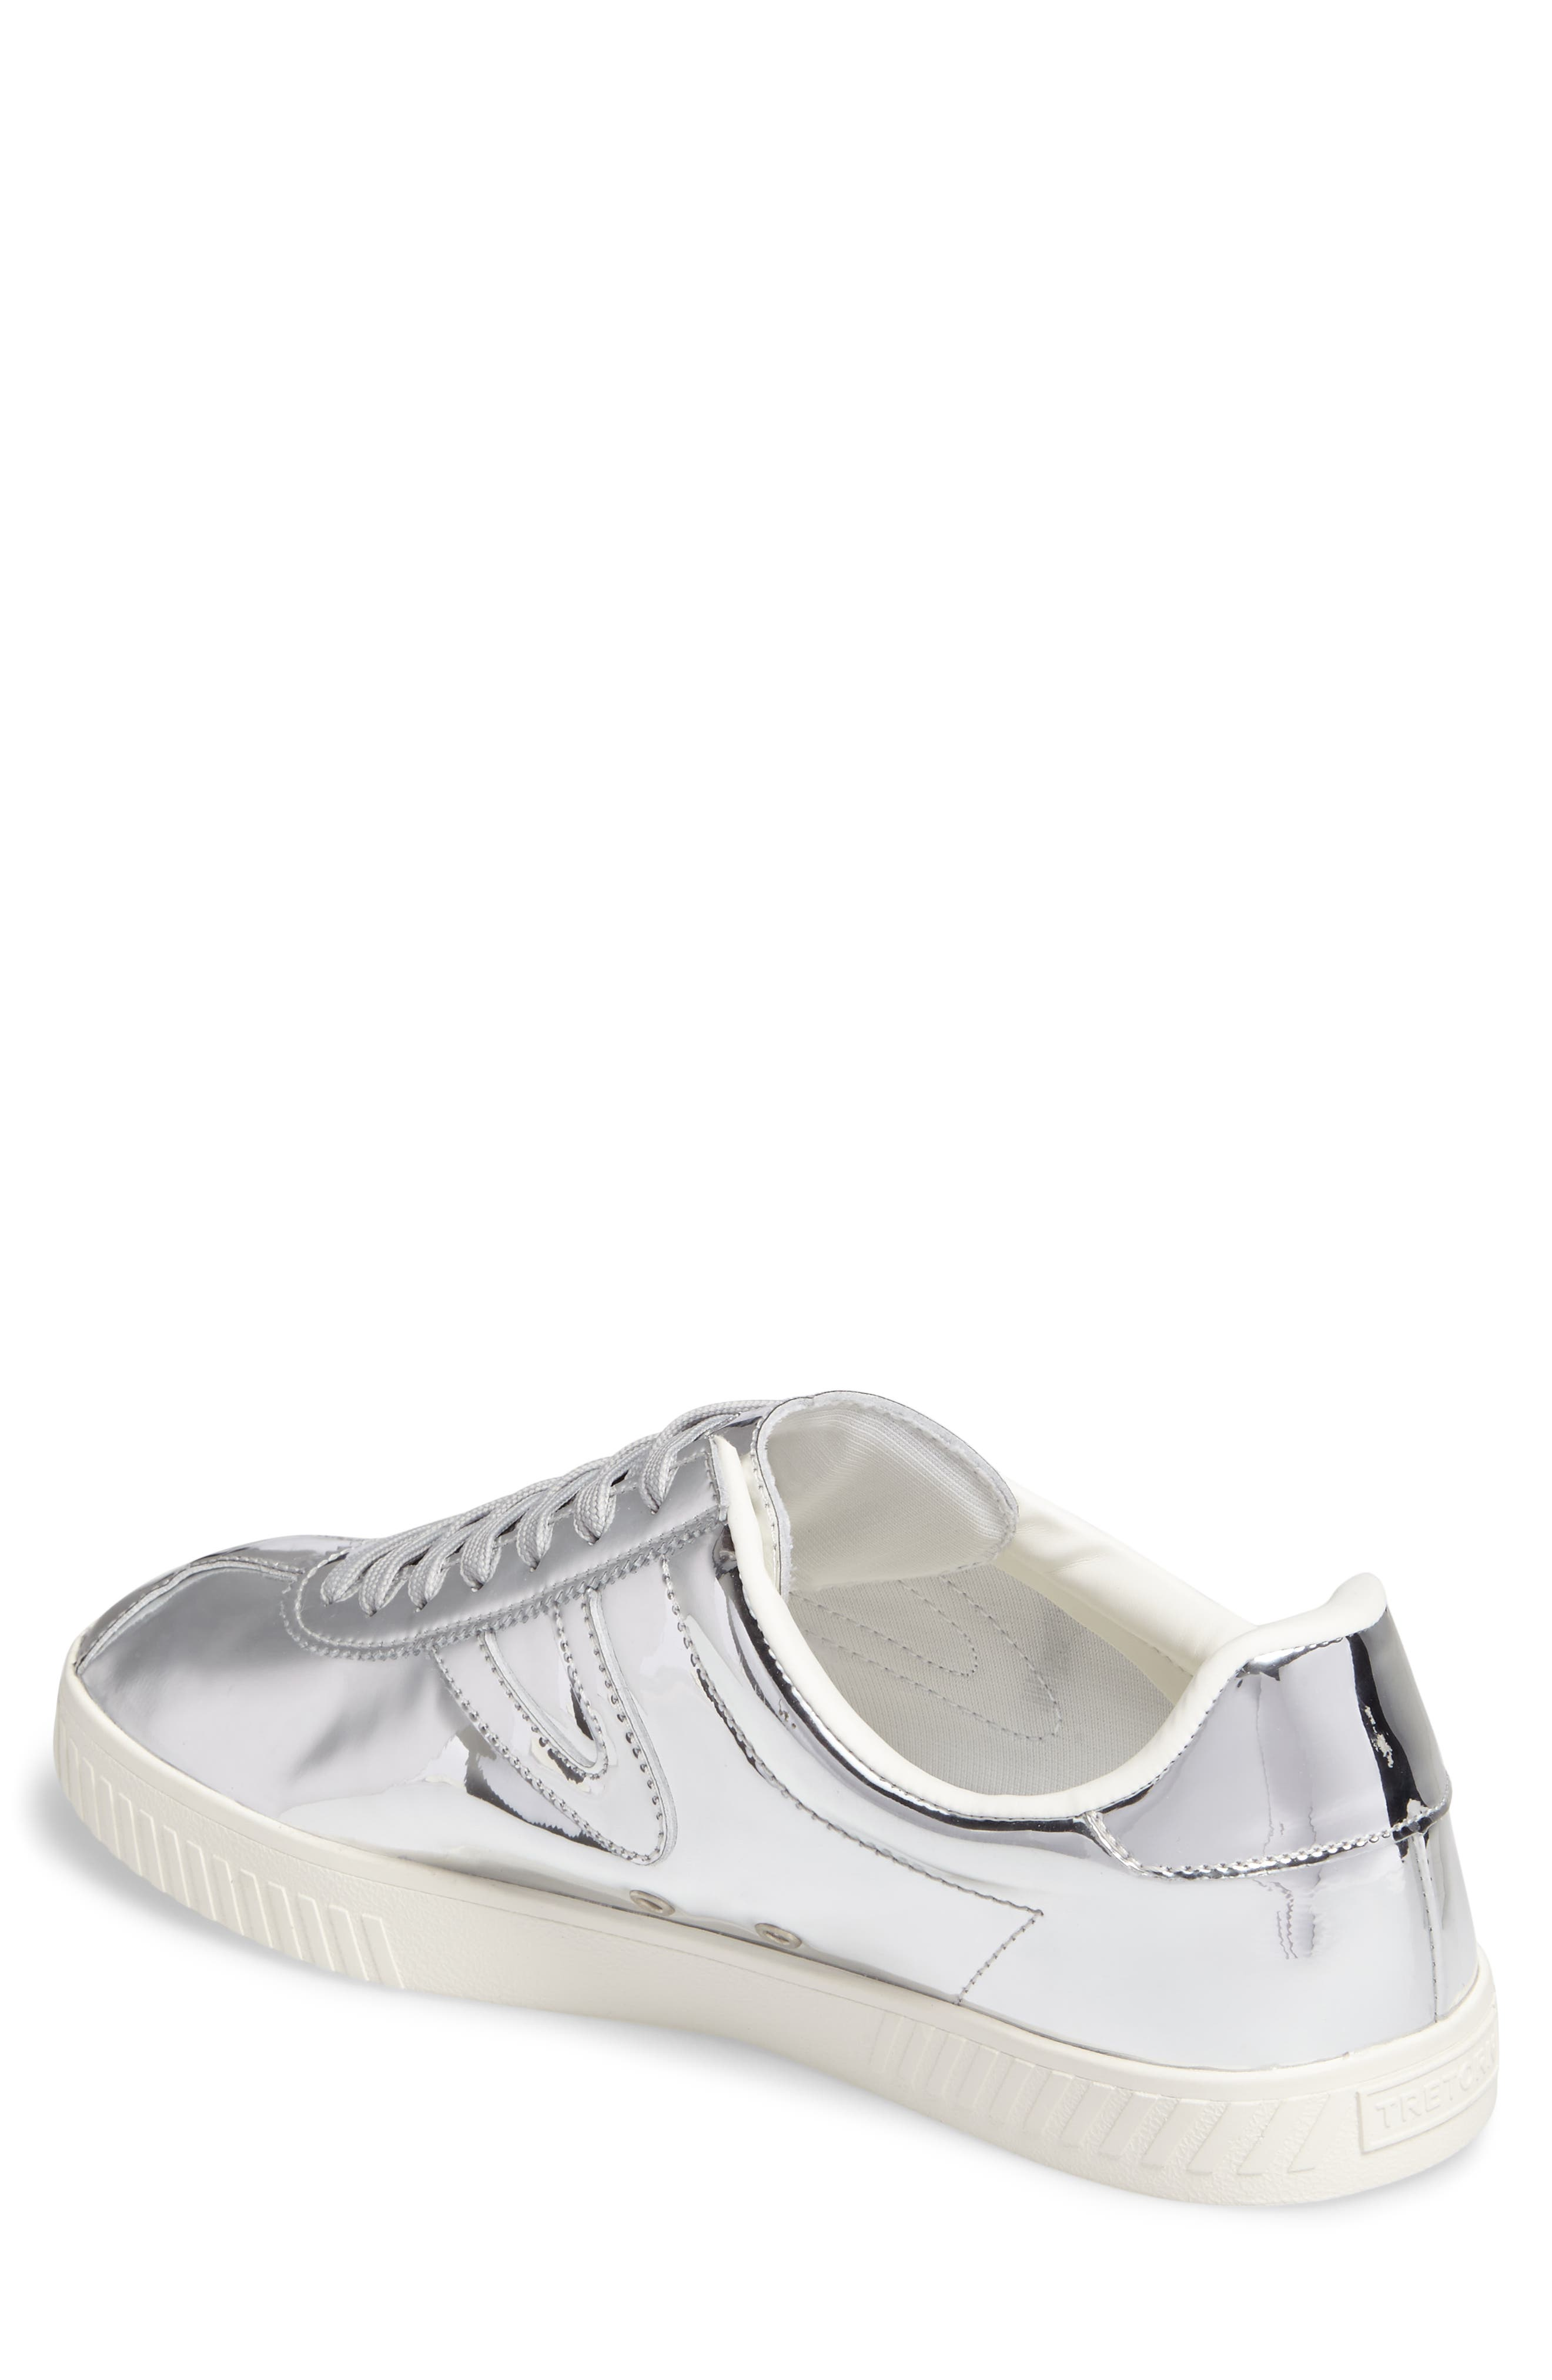 Camden 2 Sneaker,                             Alternate thumbnail 2, color,                             SILVER LEATHER